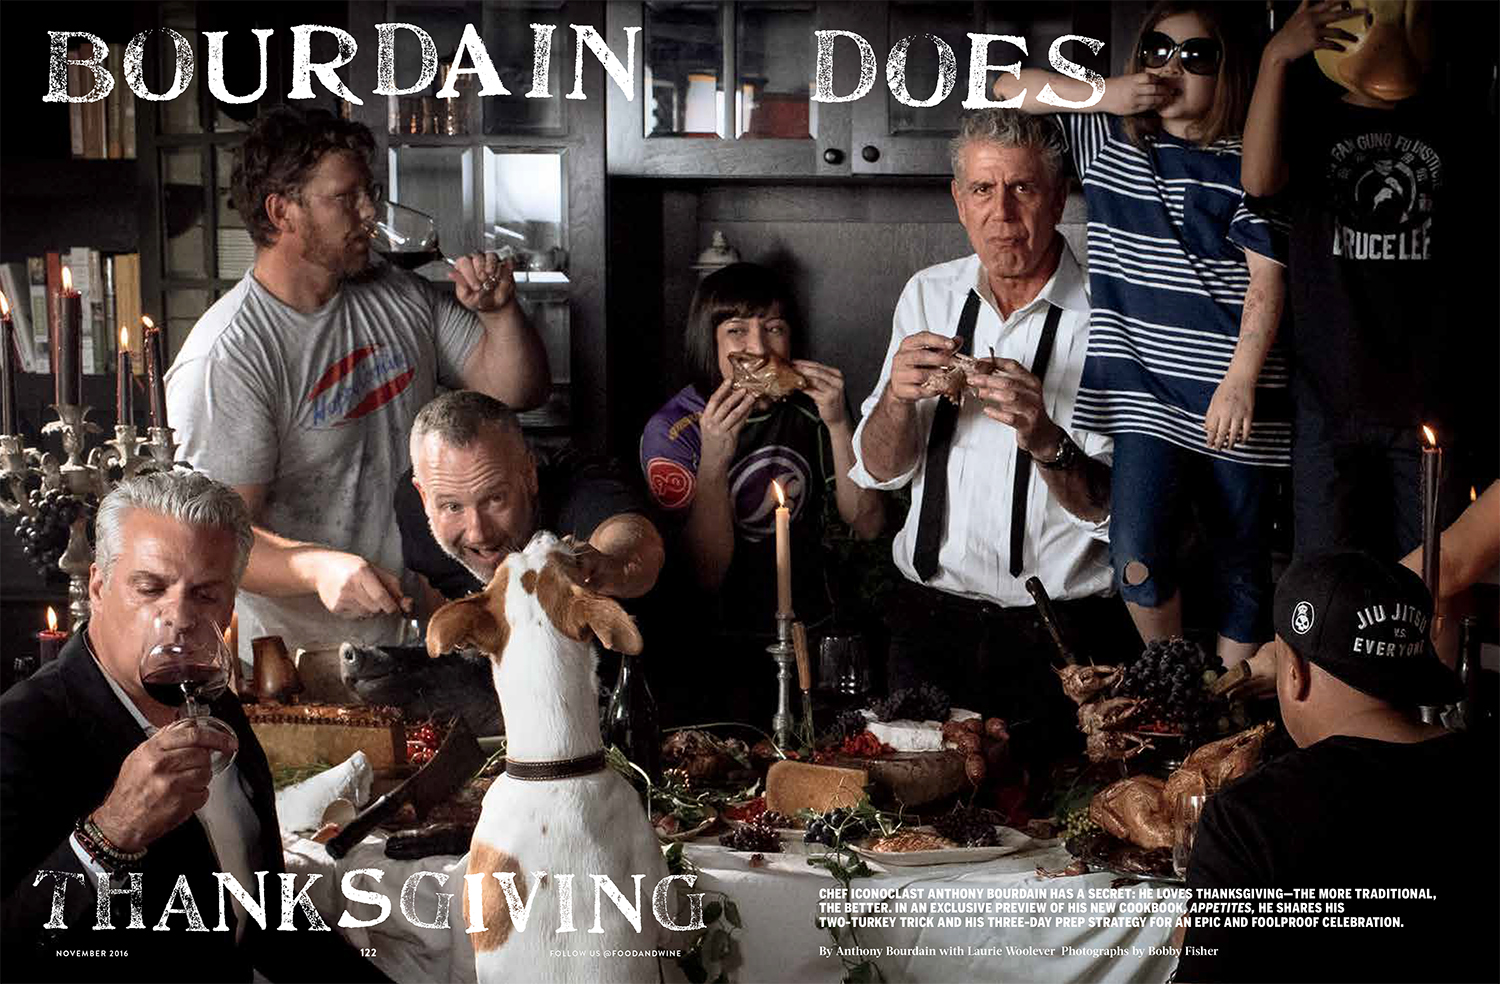 122_1116_WELL_BOURDAIN_lo_text-1.jpg